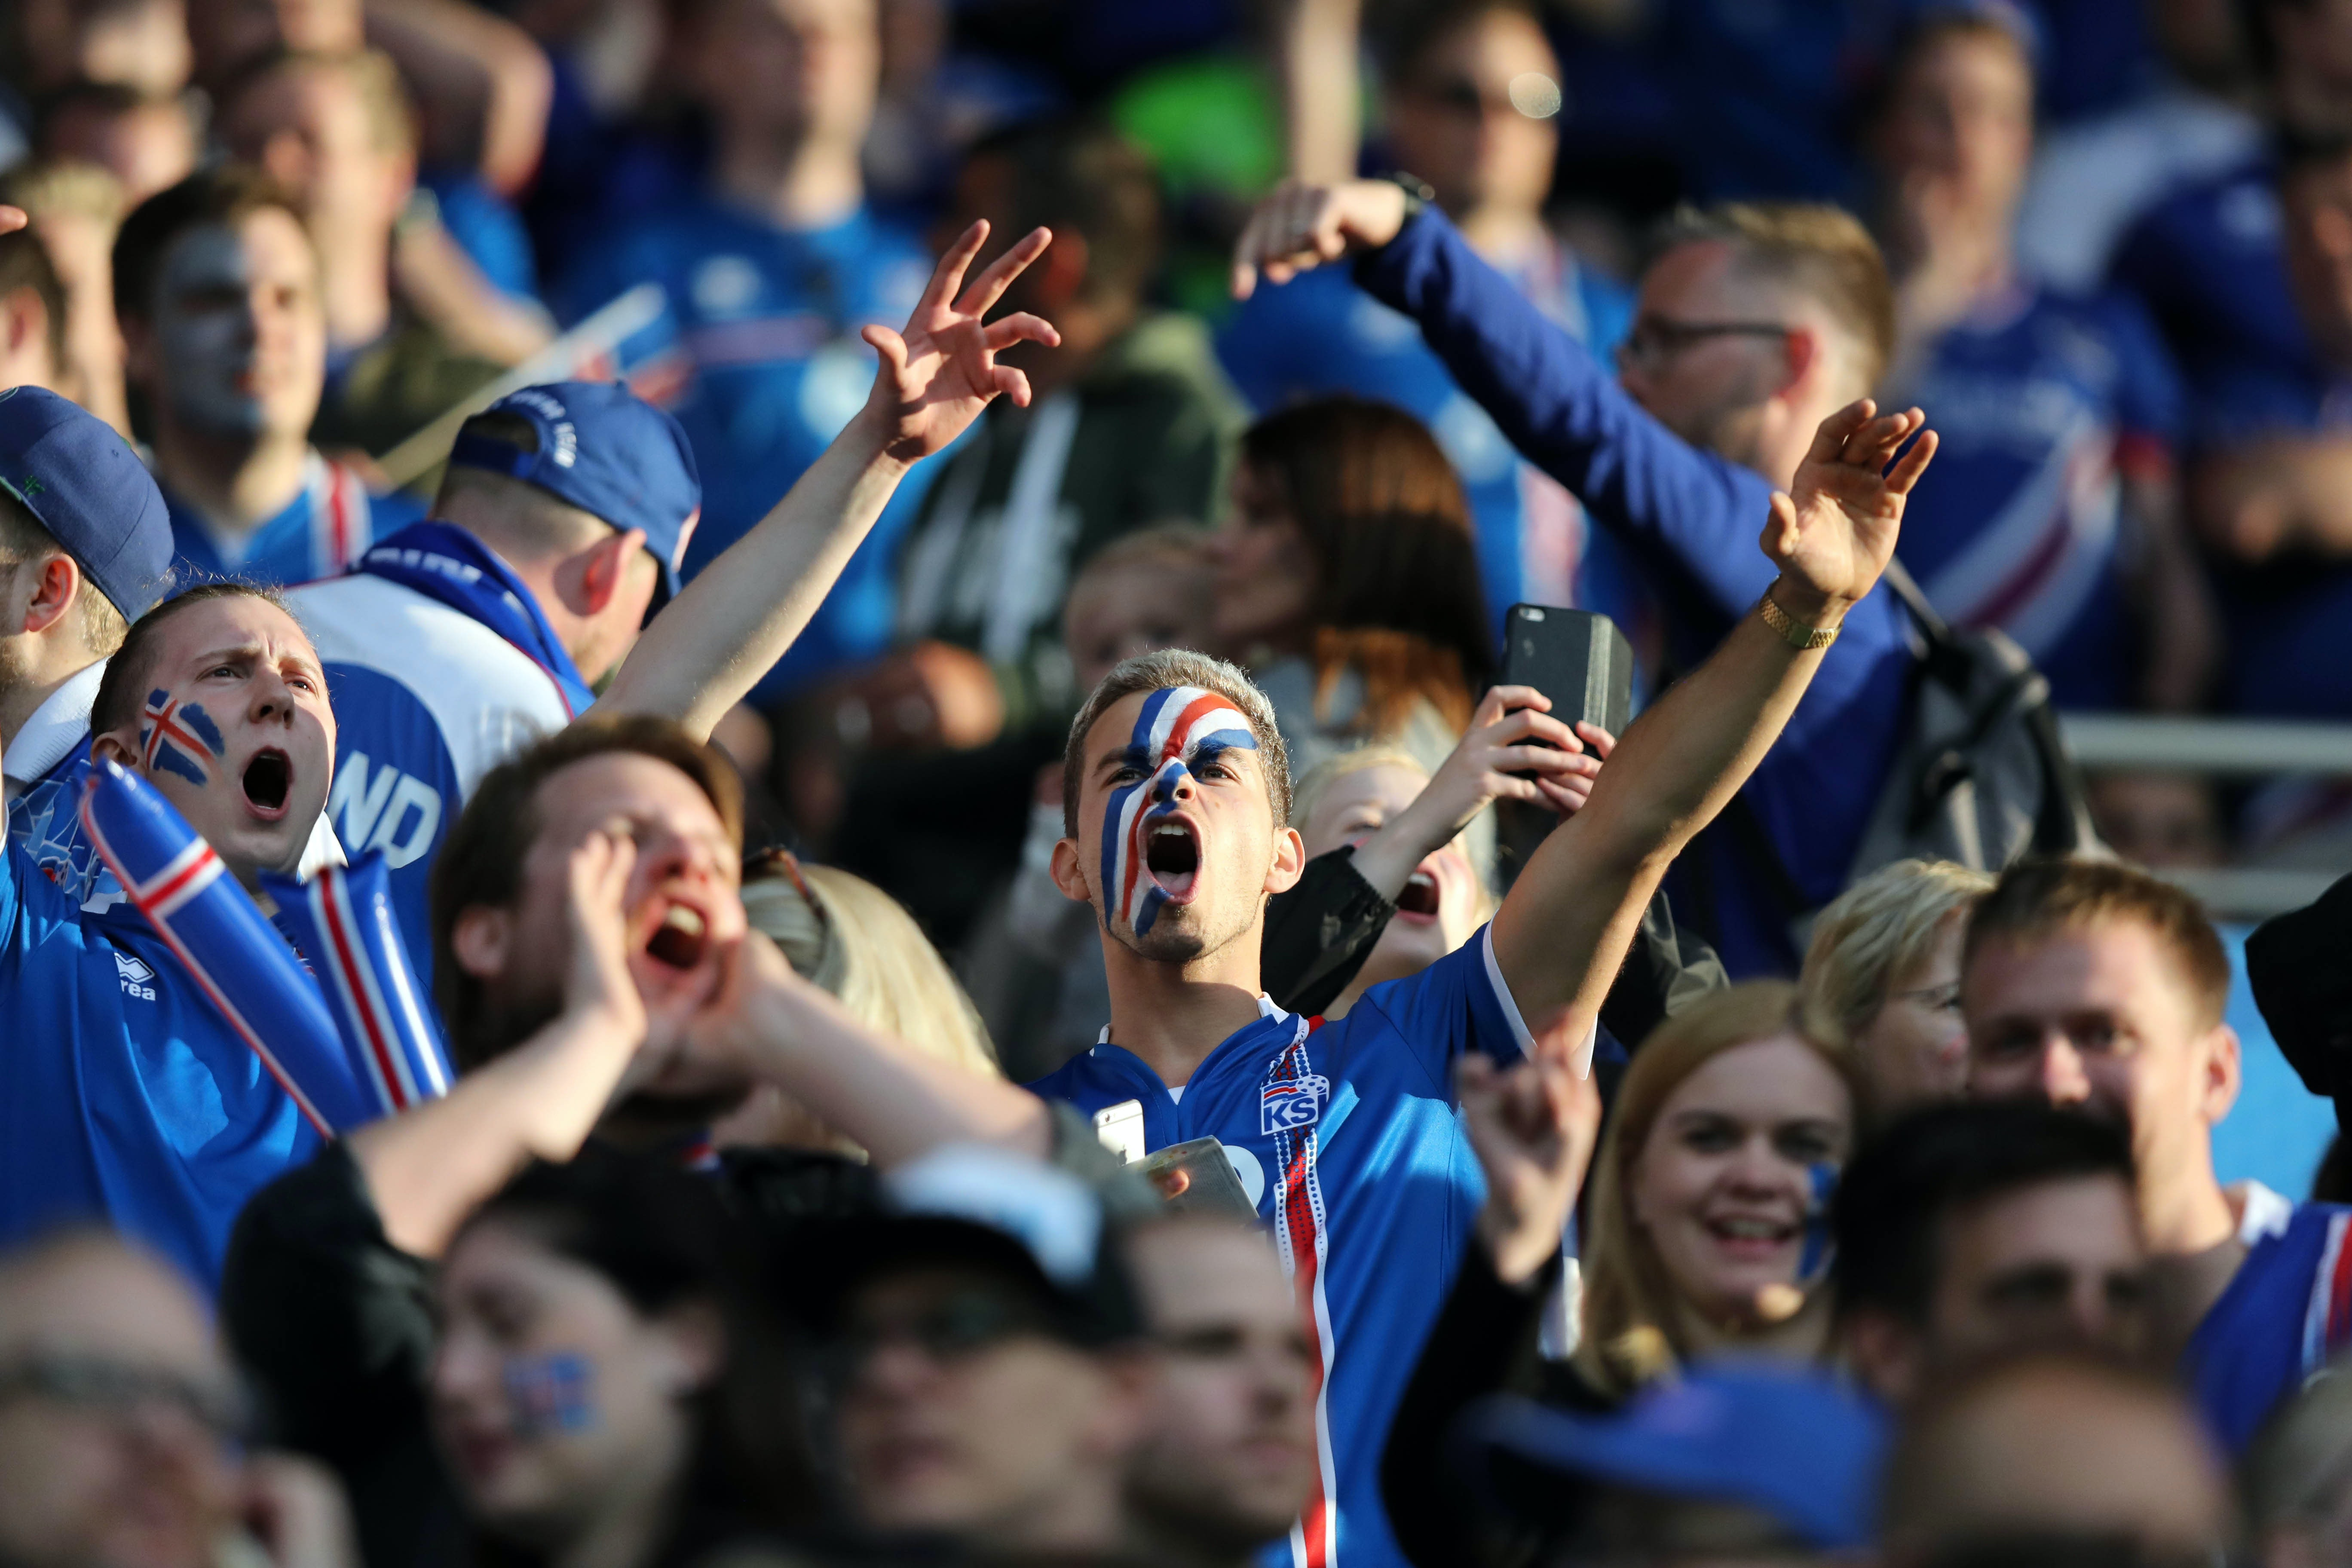 Iceland fans during the first game of their unexpected winning streak during the 2016 EuroCup.